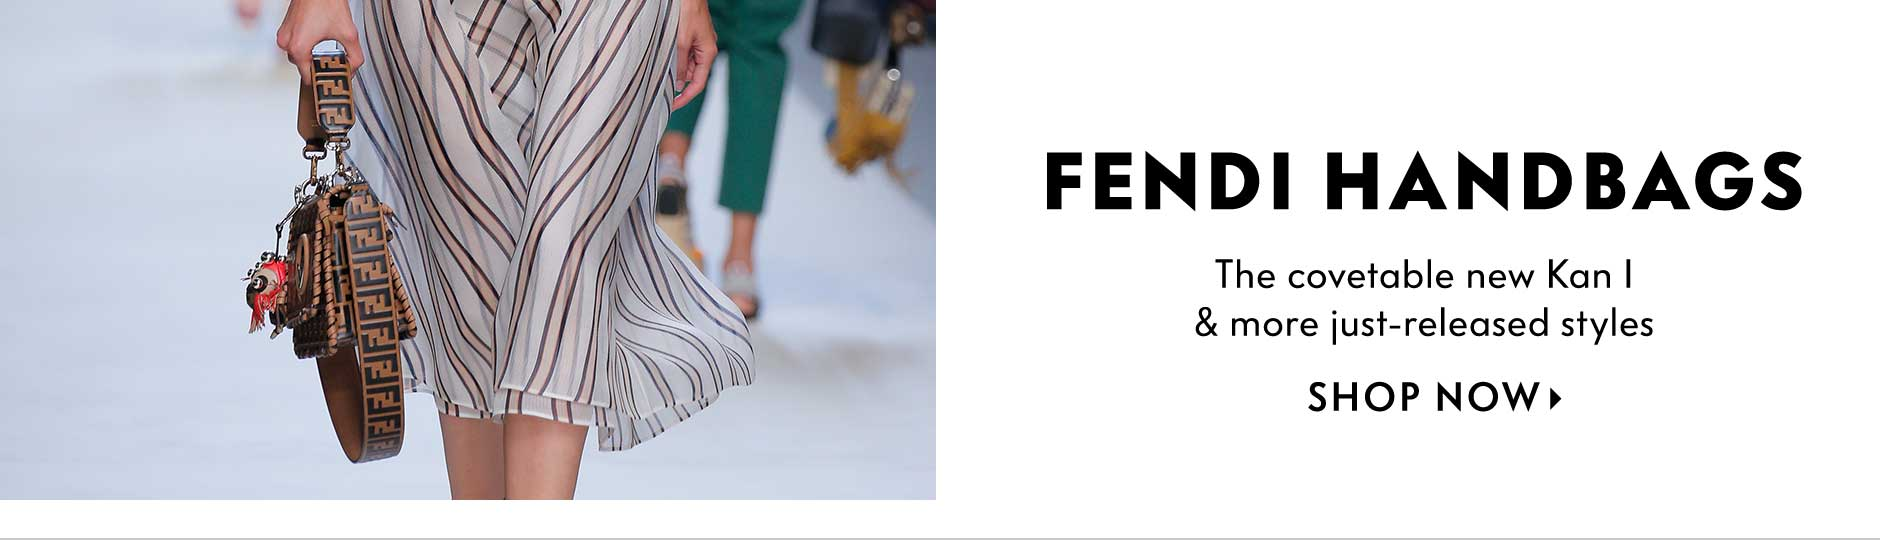 Fendi Handbags - The covetable new Kan I & more just-released styles